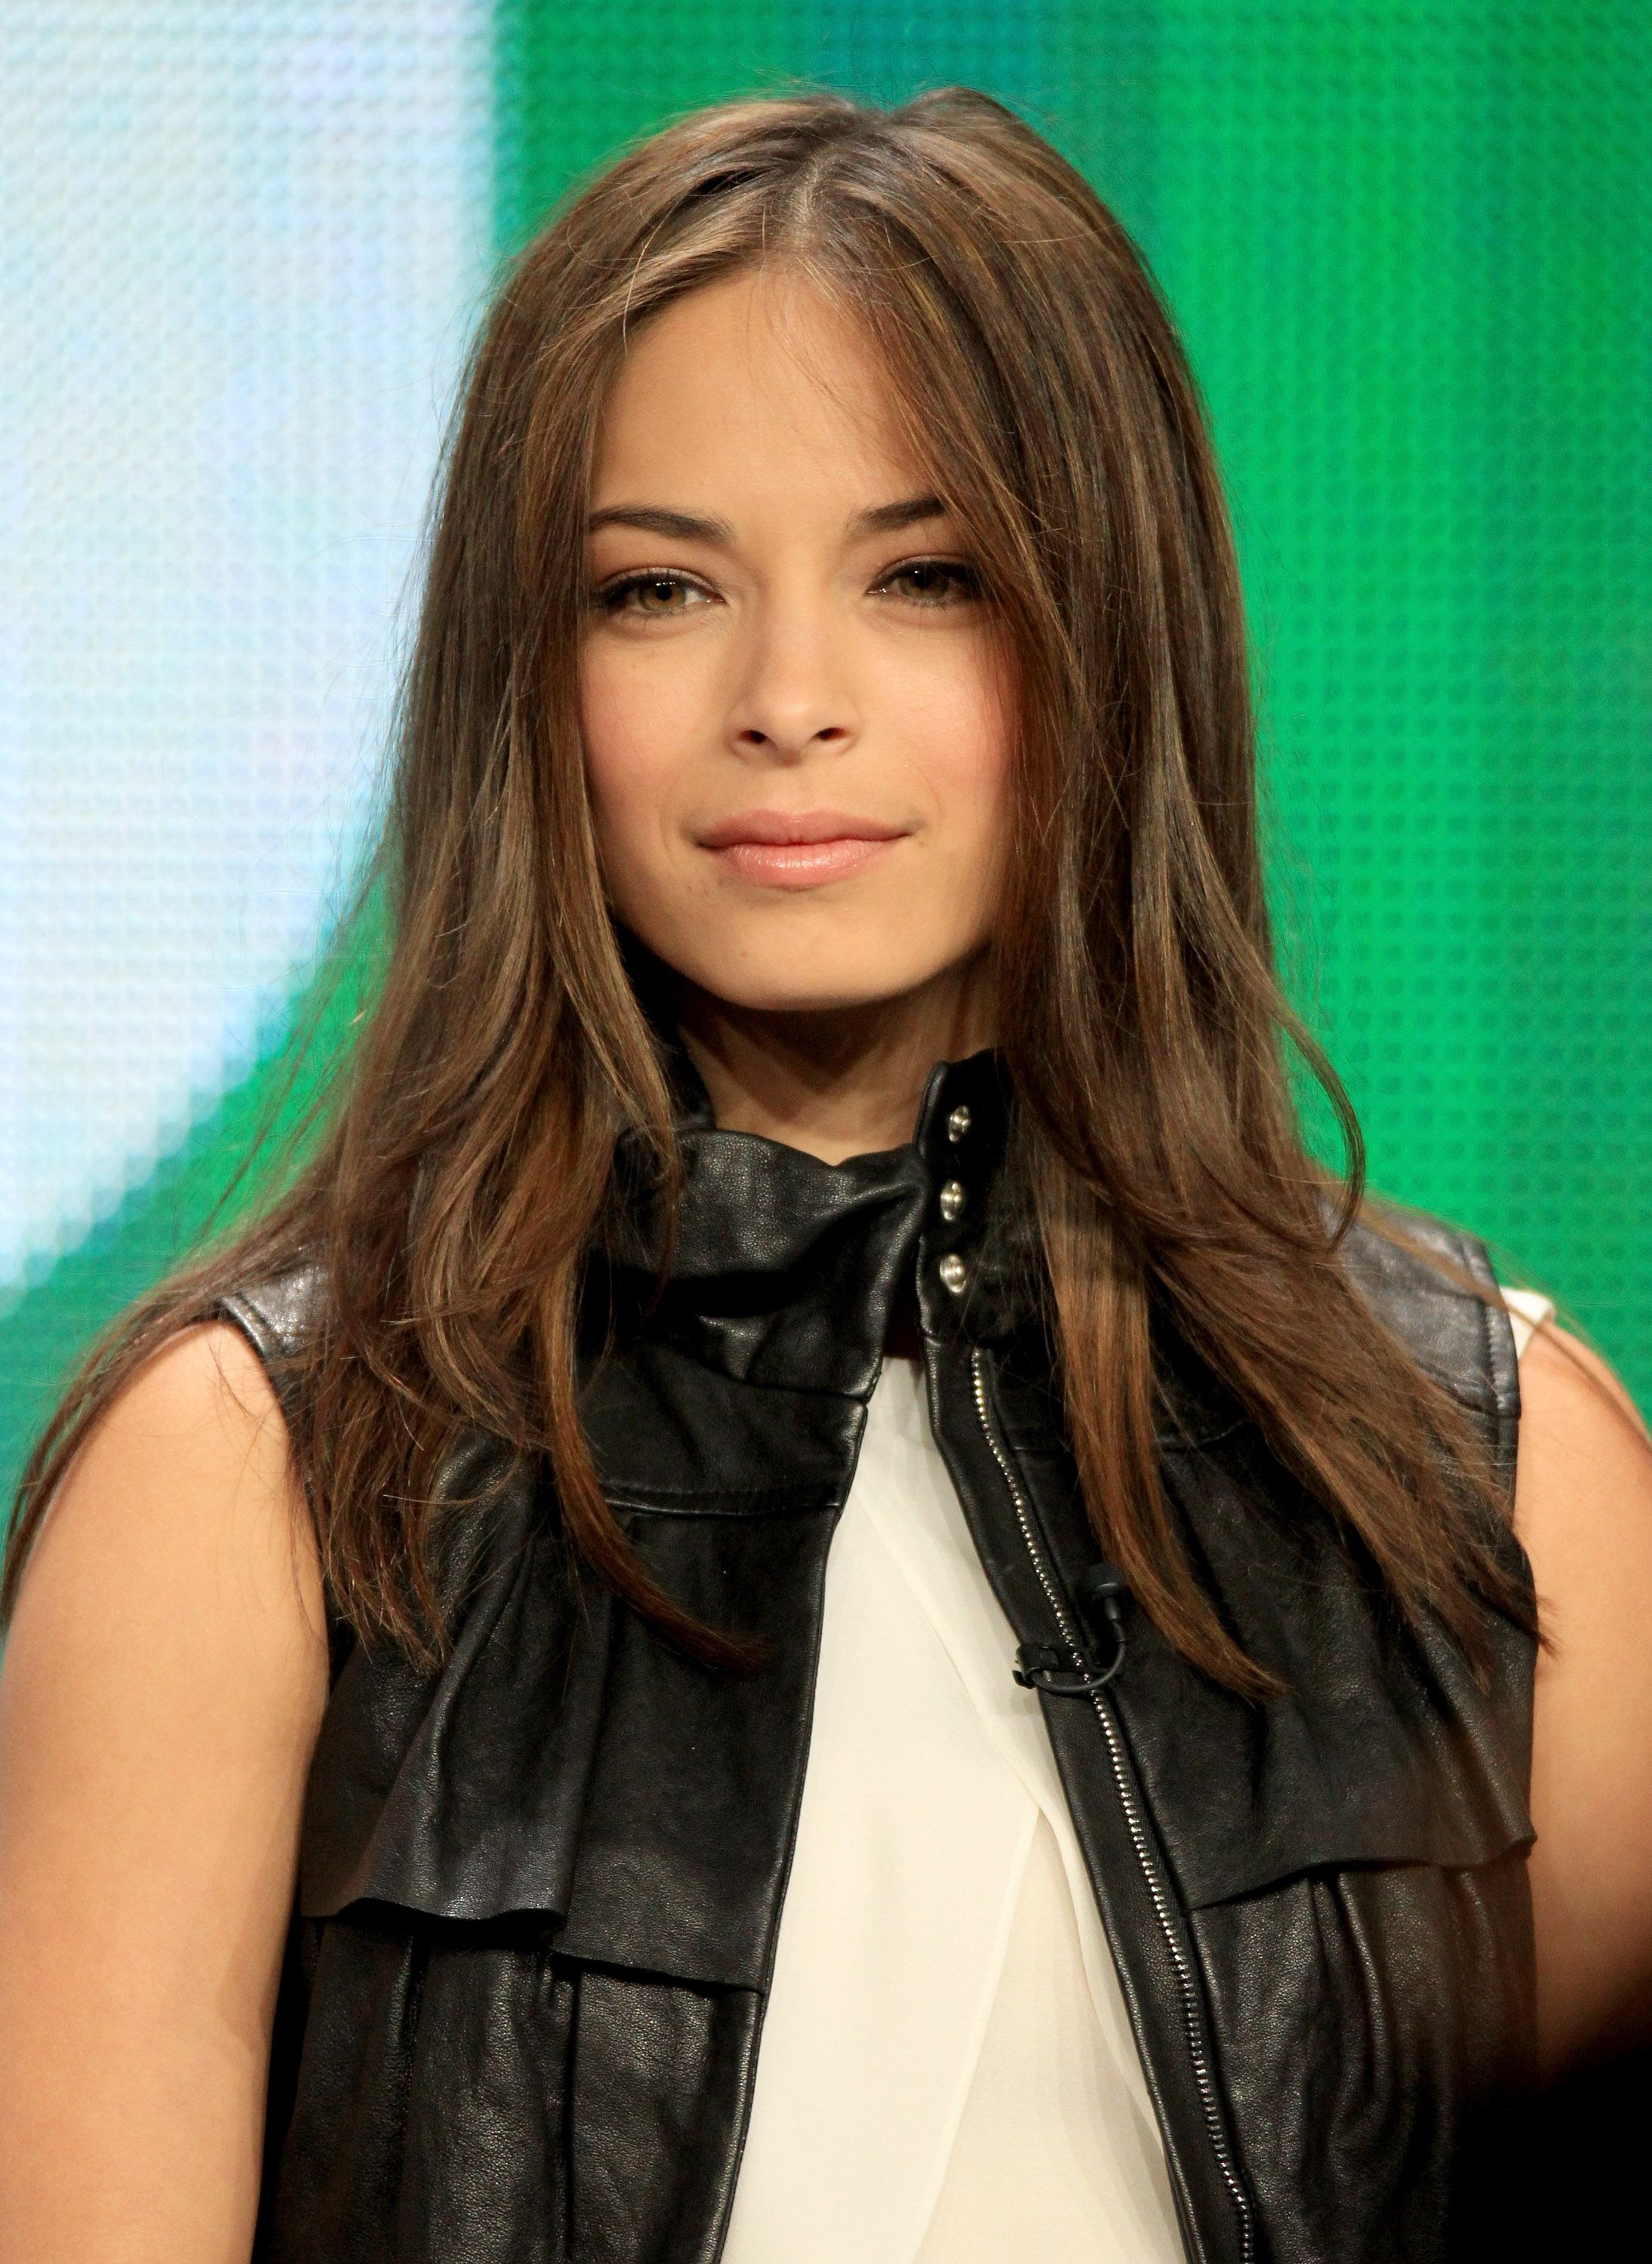 Kristin Kreuk Photo 243 Of 347 Pics Wallpaper Photo